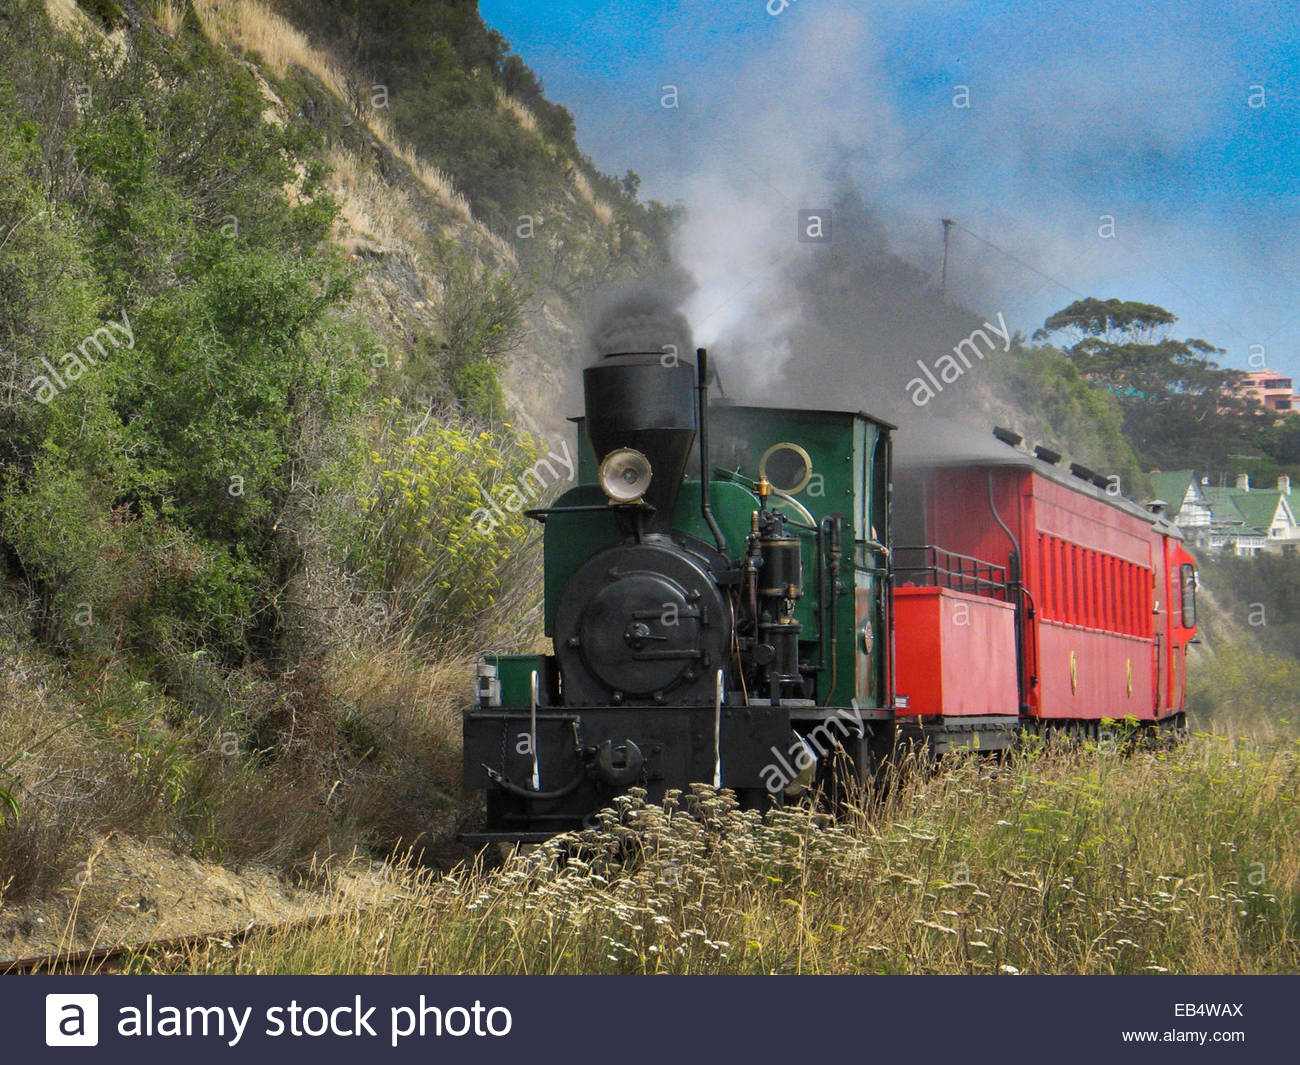 The 0-4-0 saddle tank steam locomotive of the Oamaru Steam and Rail Society, Limited, of Oamaru, New Zealand, on - Stock Image